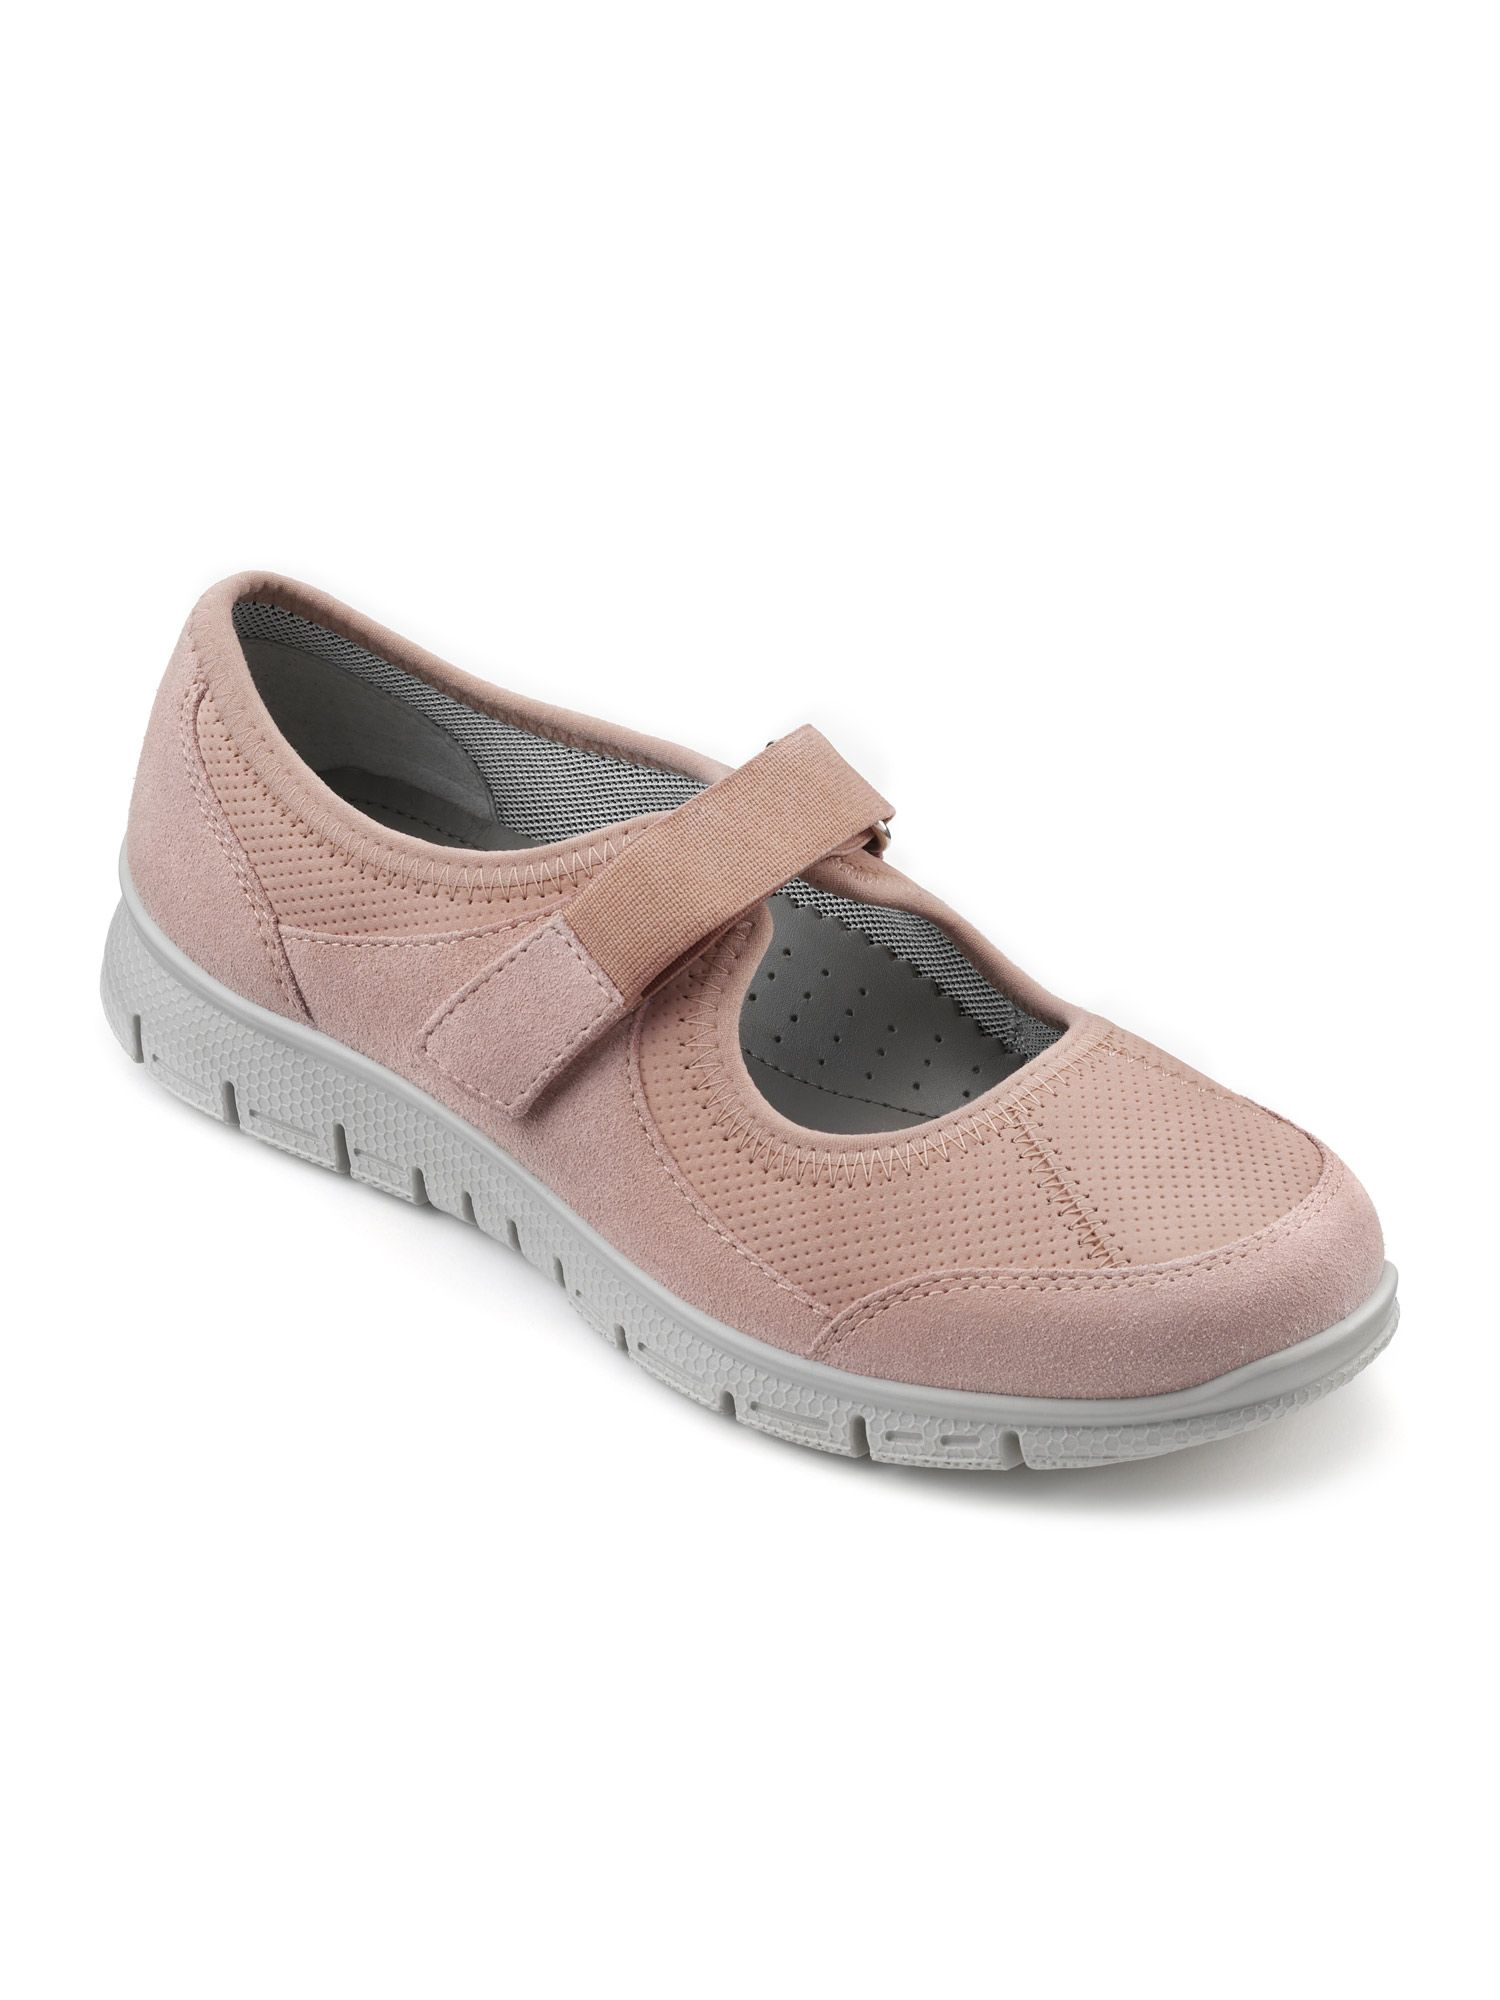 Hotter Aura Ladies Active Shoe, Powder Pink